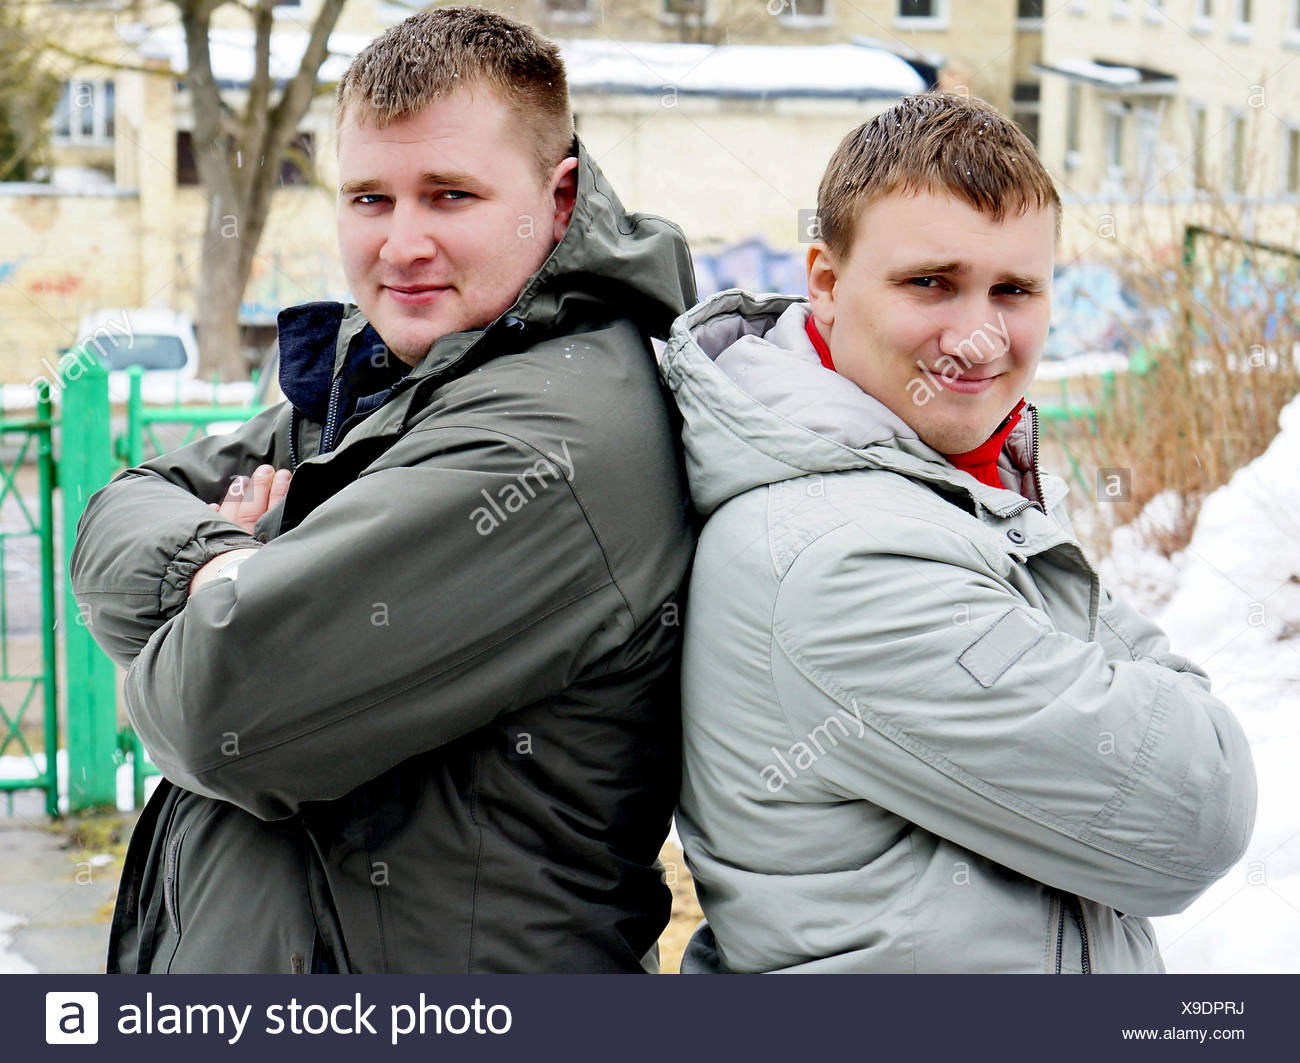 Two guys in jackets - Stock Image